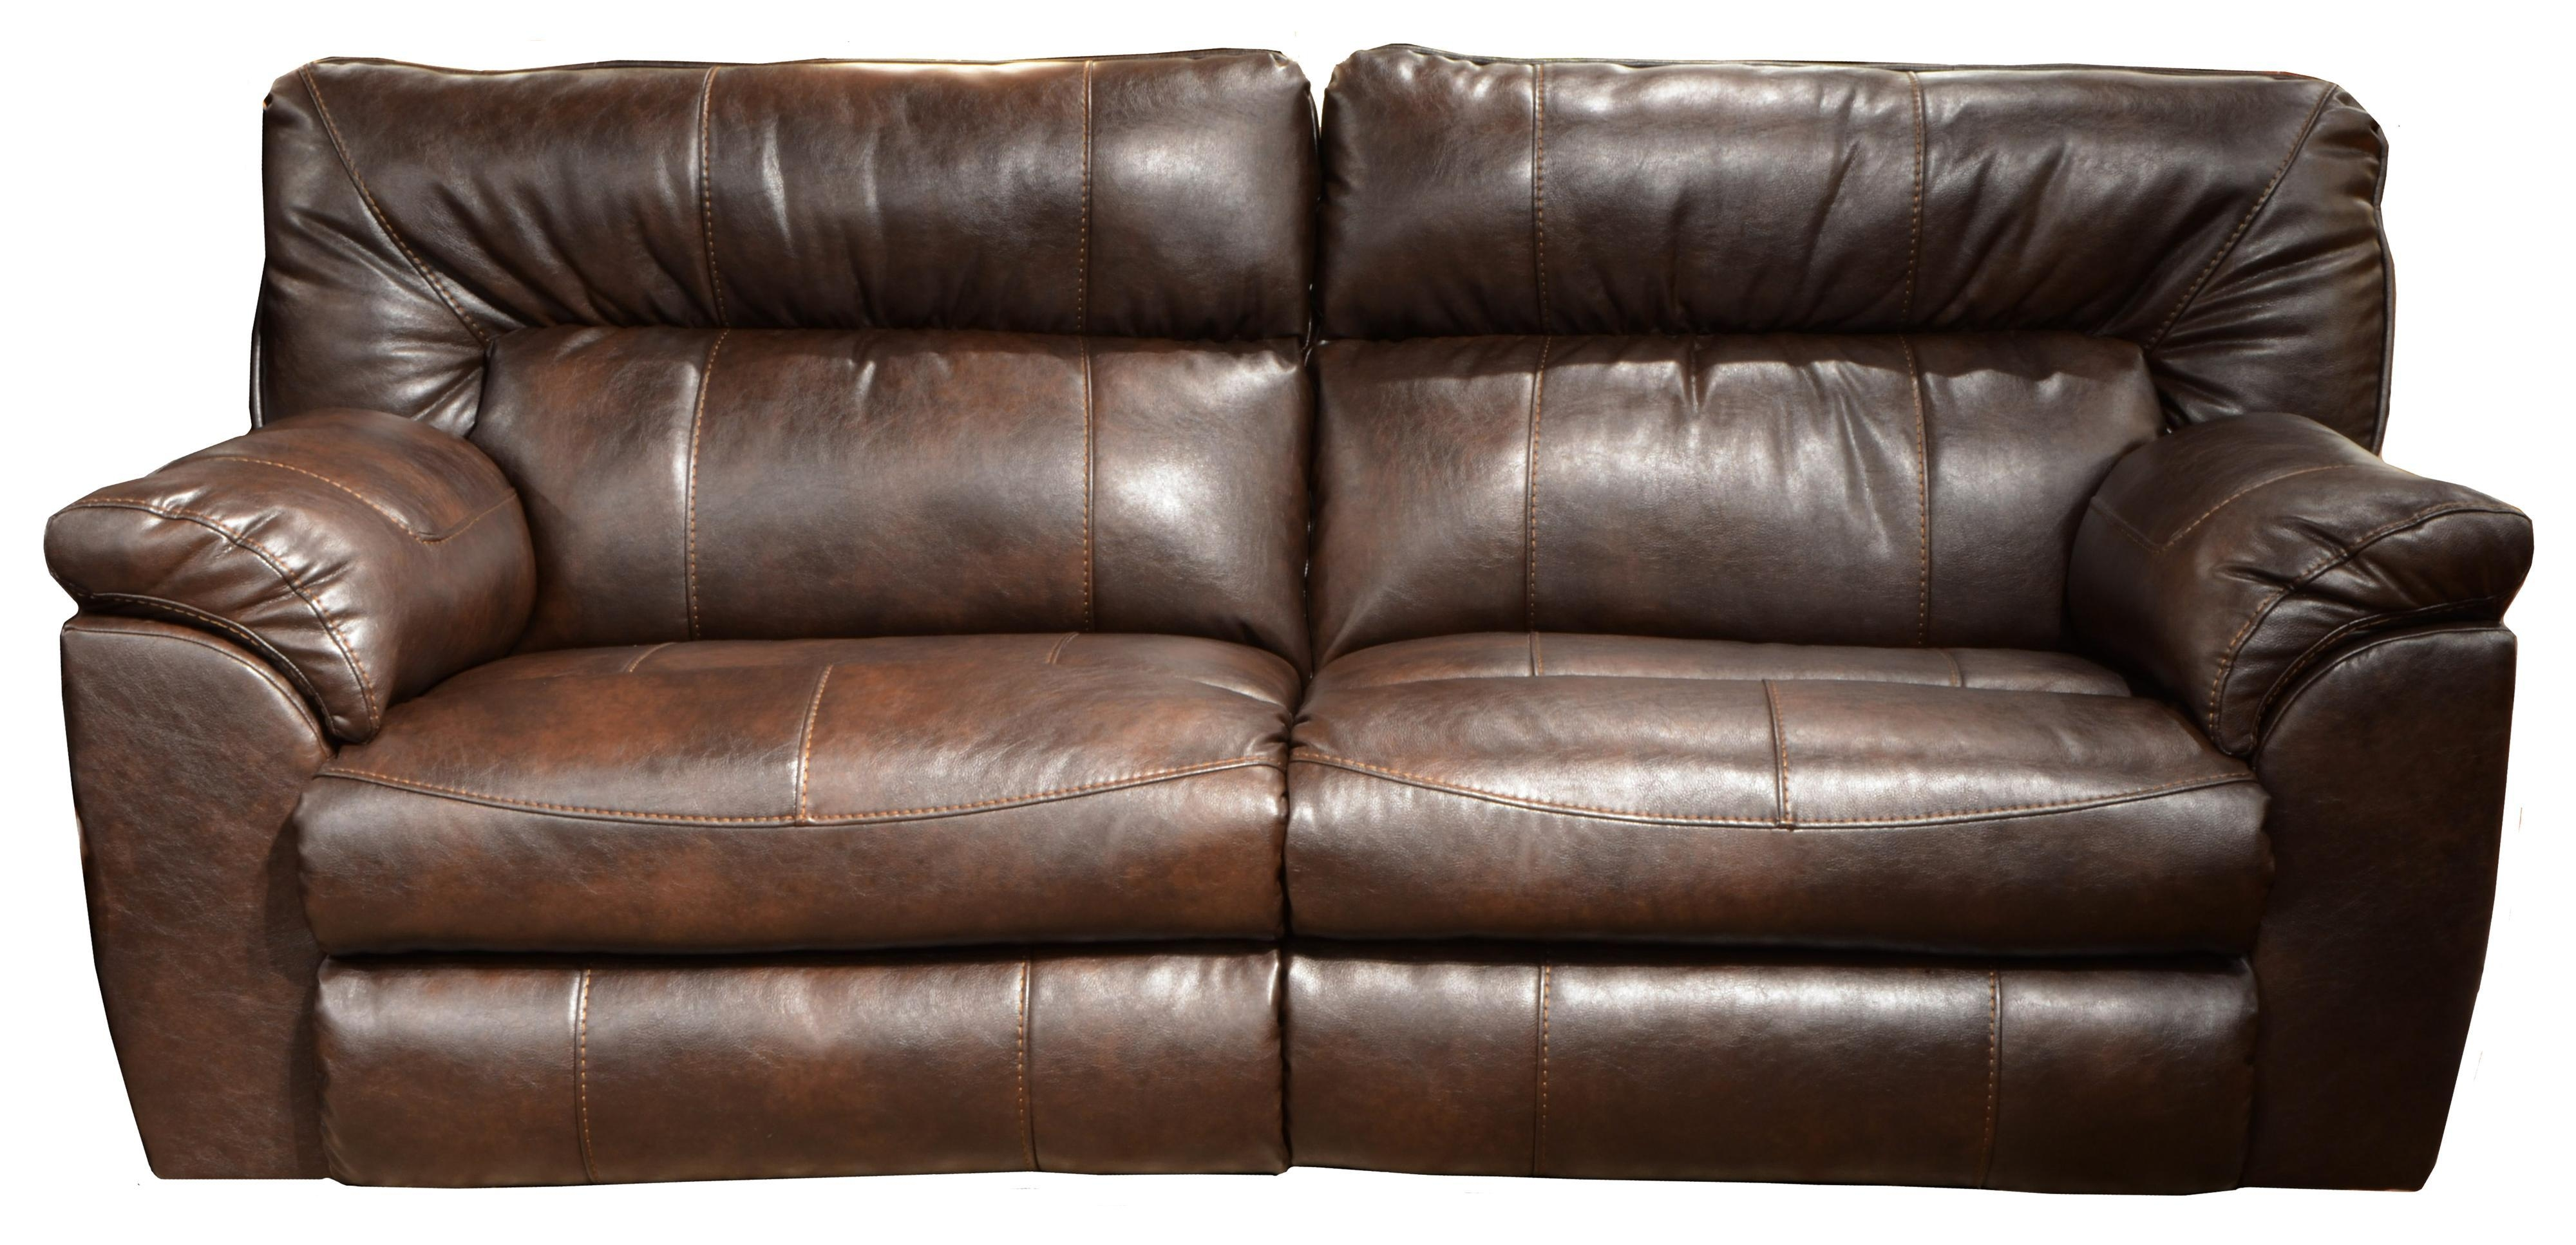 Bonded Leather Sofa | Best Sofas Ideas – Sofascouch With Regard To Bonded Leather Sofas (Image 7 of 20)